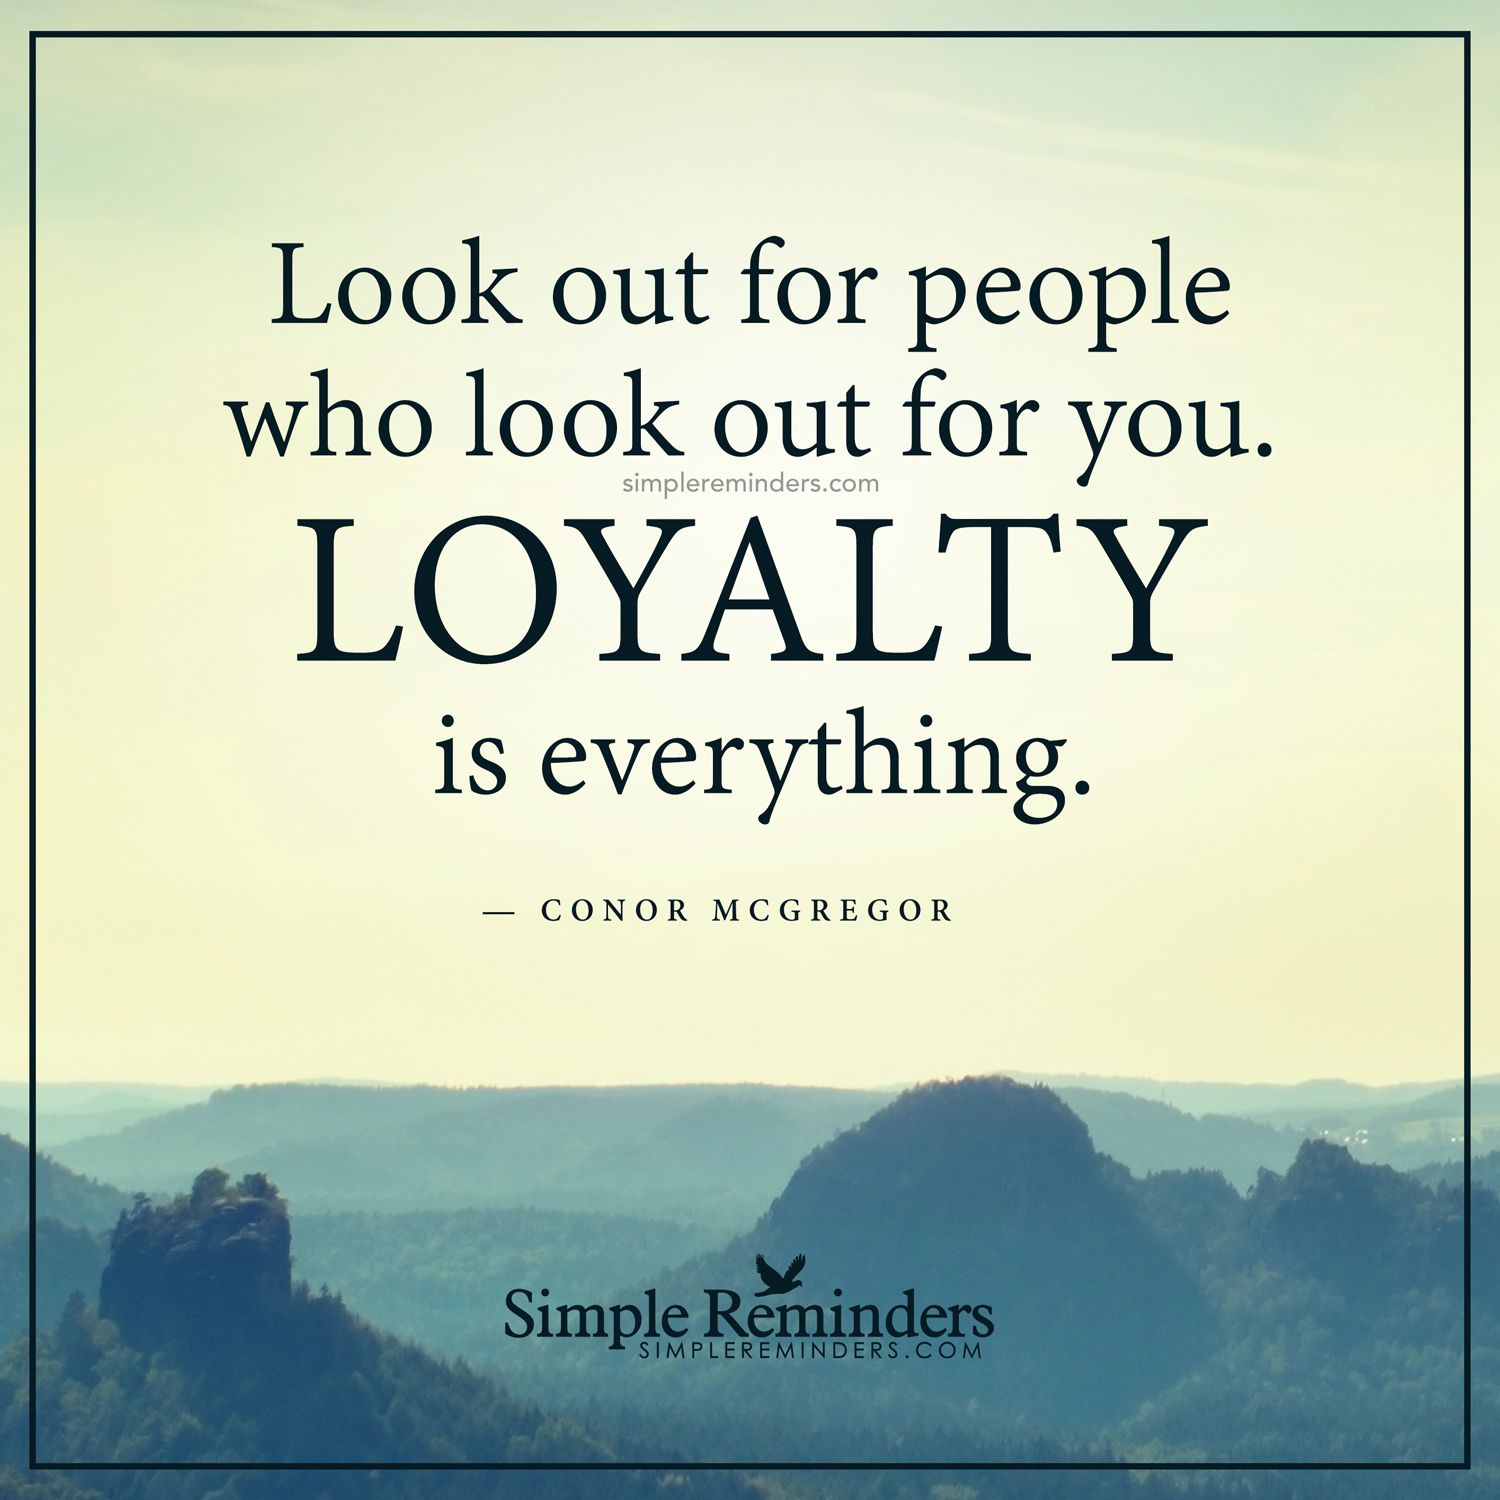 Loyalty Is Everything By Conor Mcgregor Simple Reminders Inspirational Quotes Inspirational Words